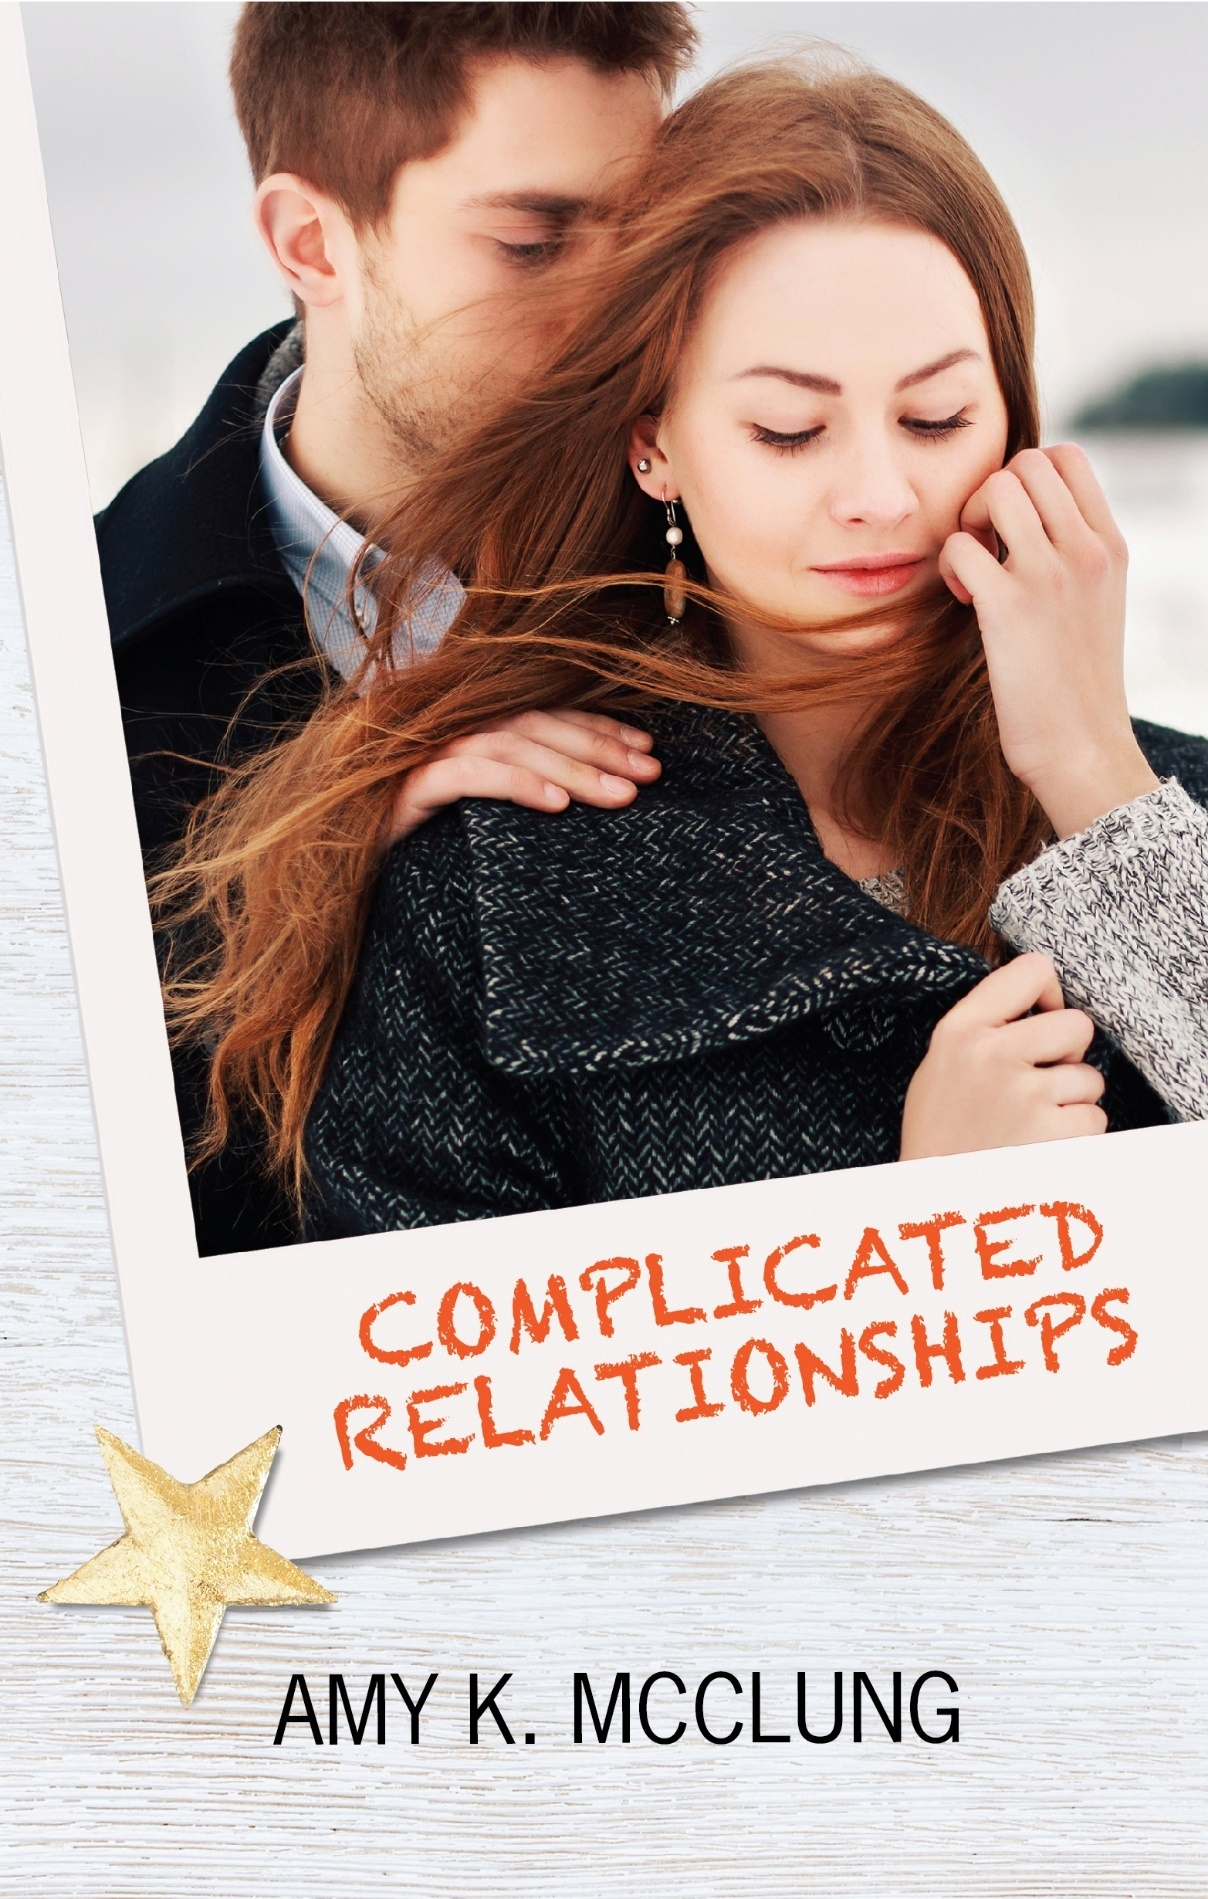 PDF Complicated Relationships by Amy K. McClung